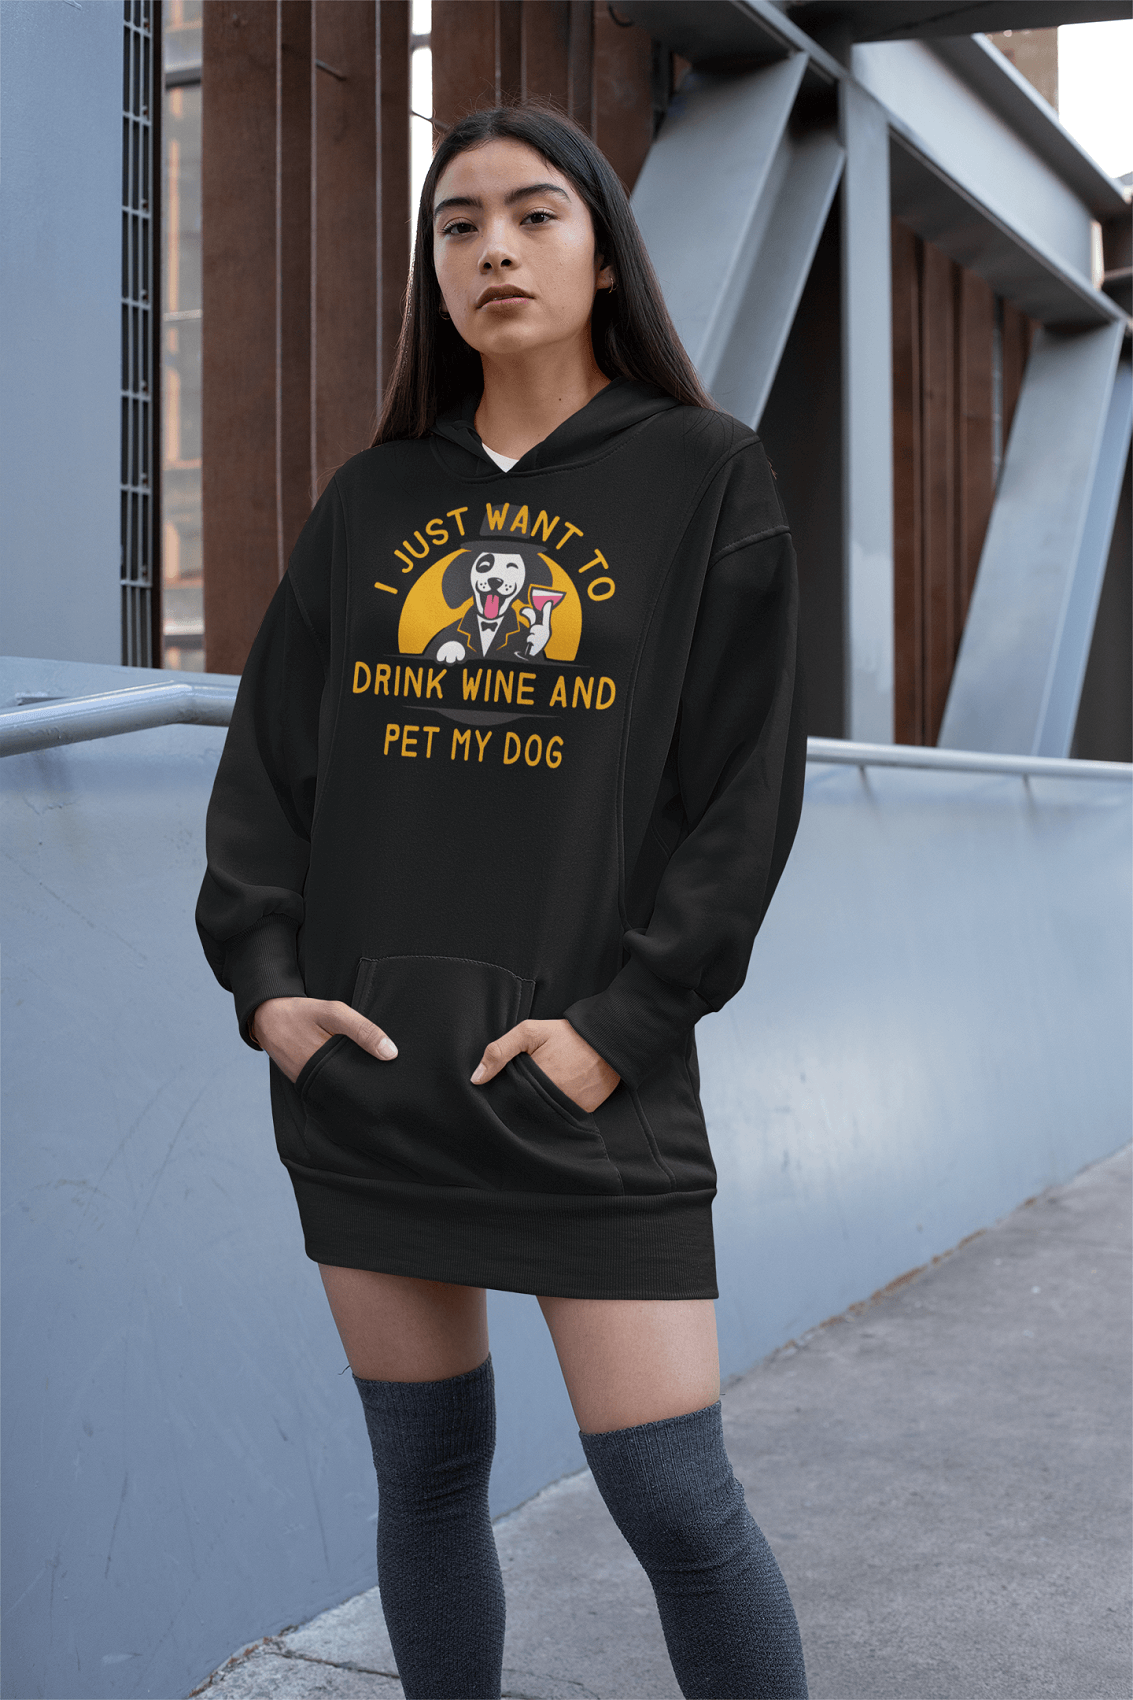 """I Just Want To Drink Wine And Pet My Dog"" Unisex Hoodie"